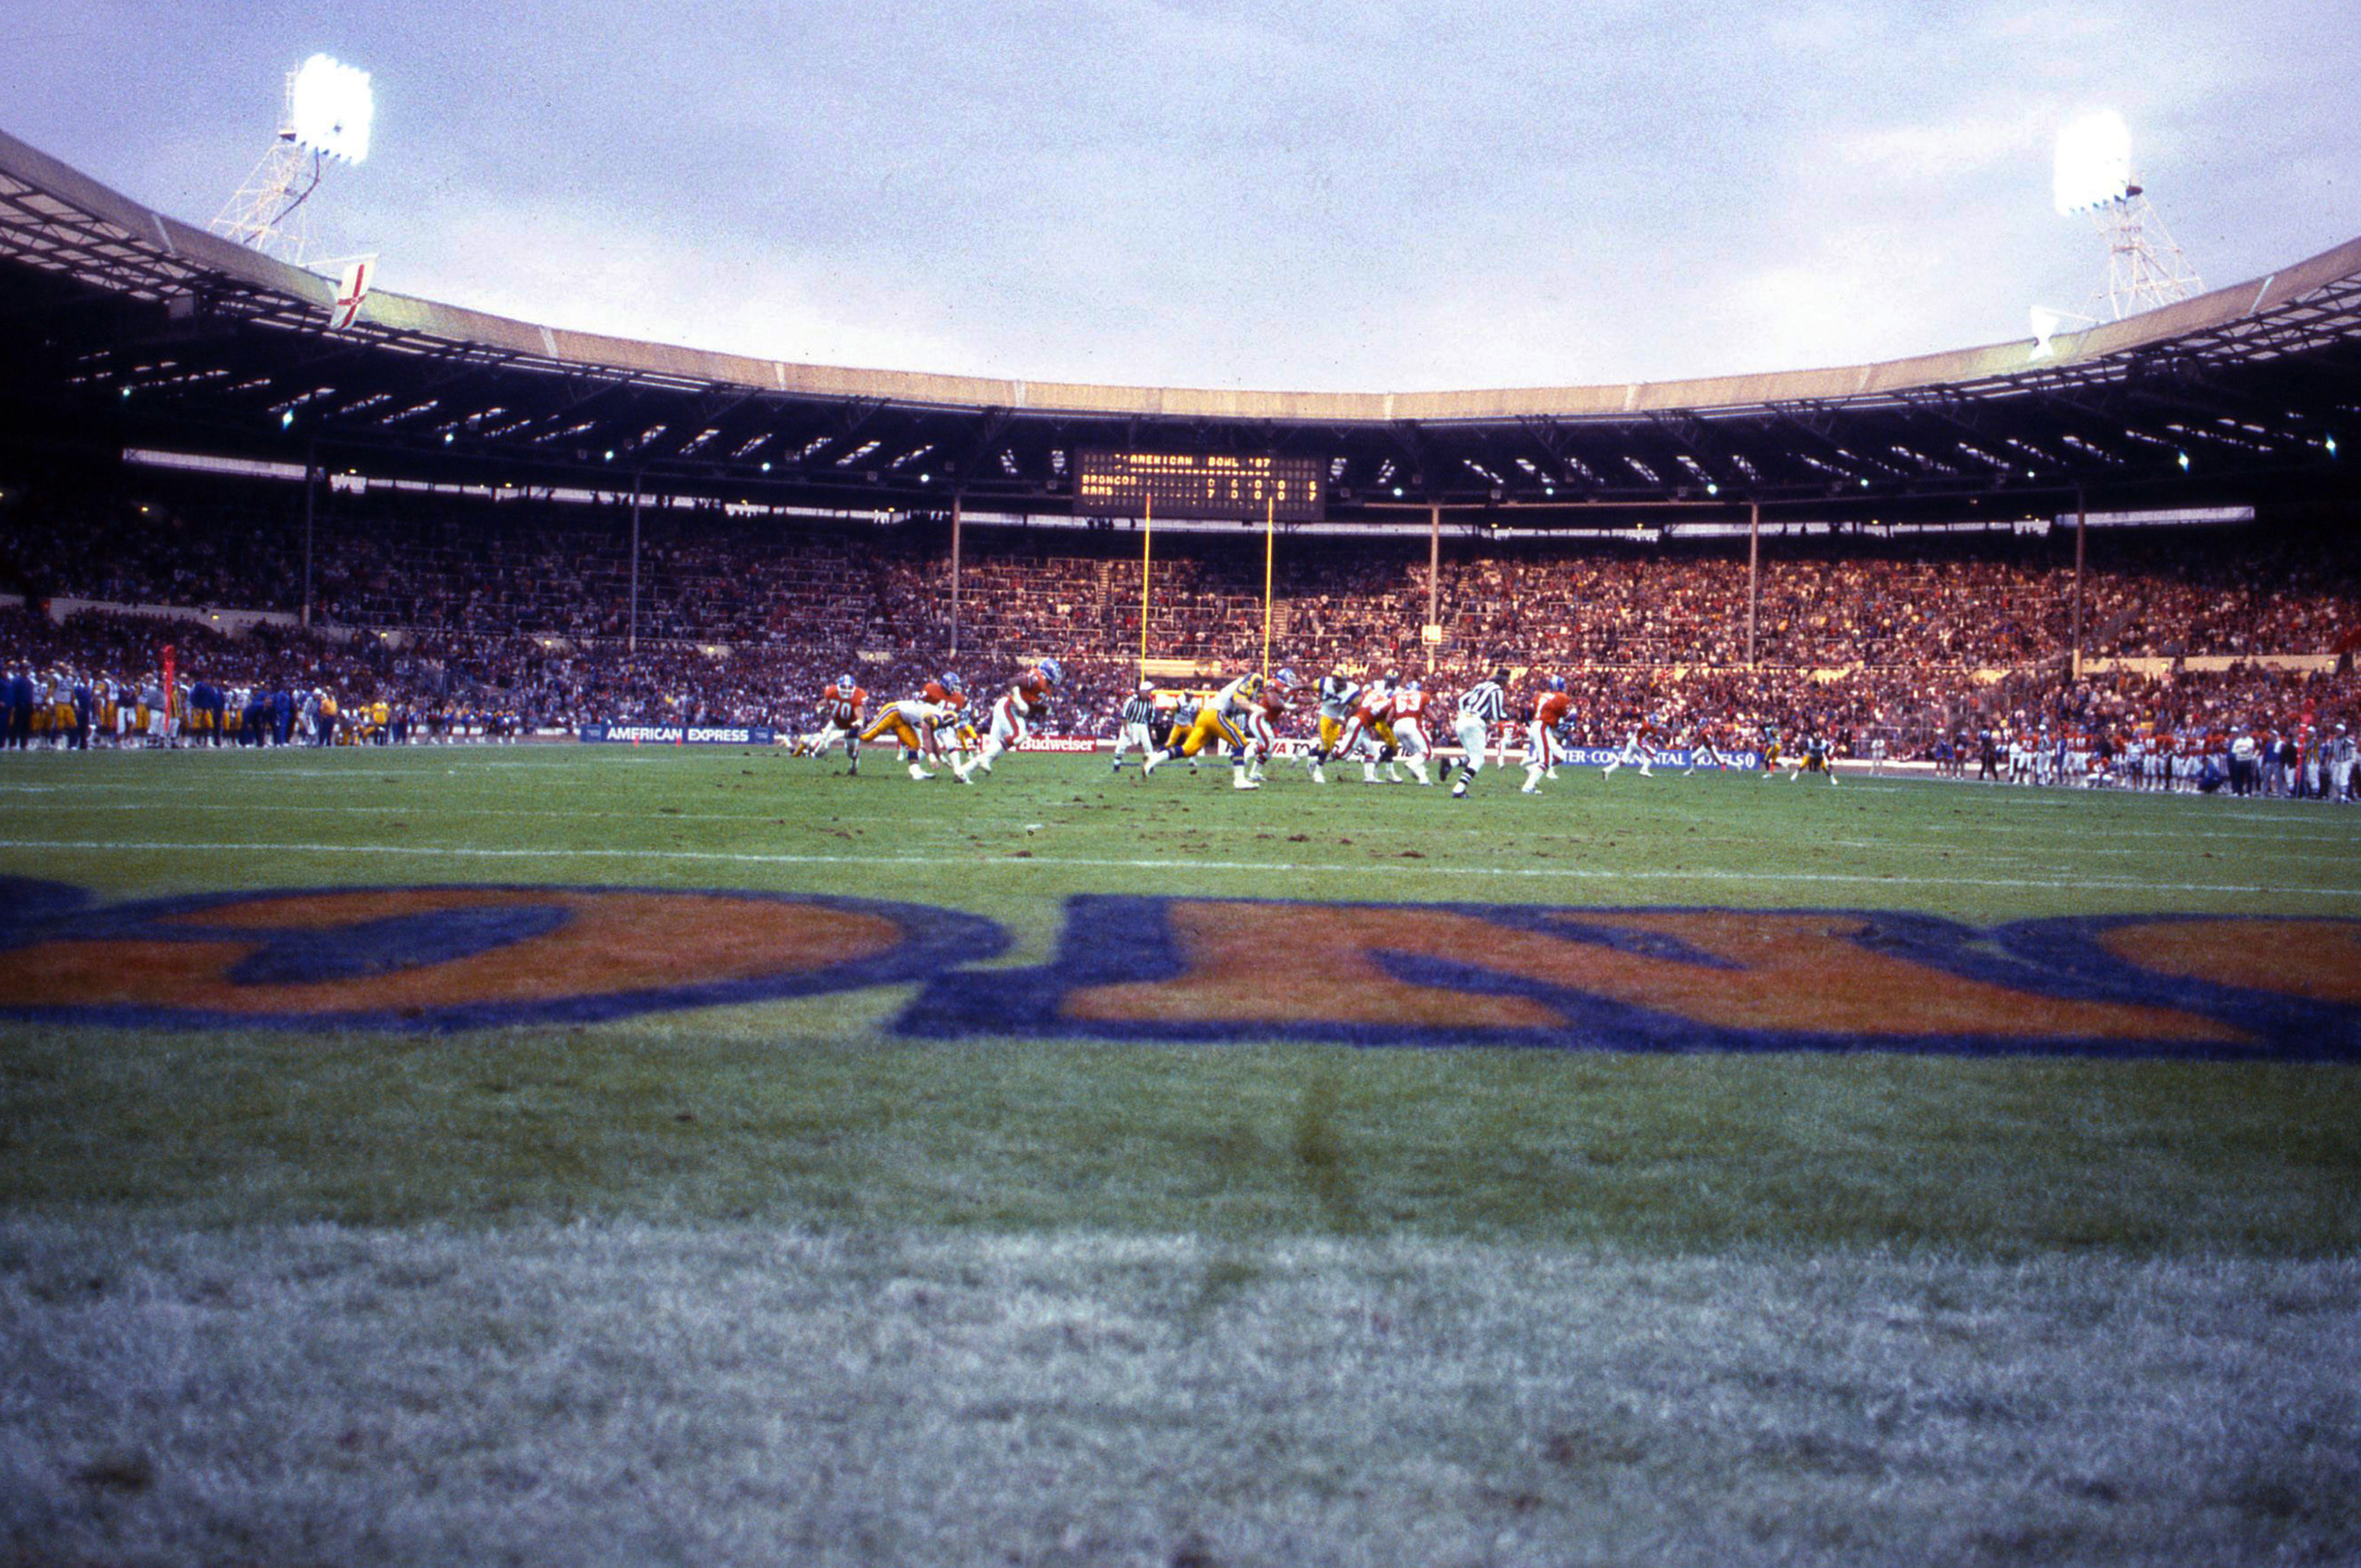 Broncos at Wembley Stadium